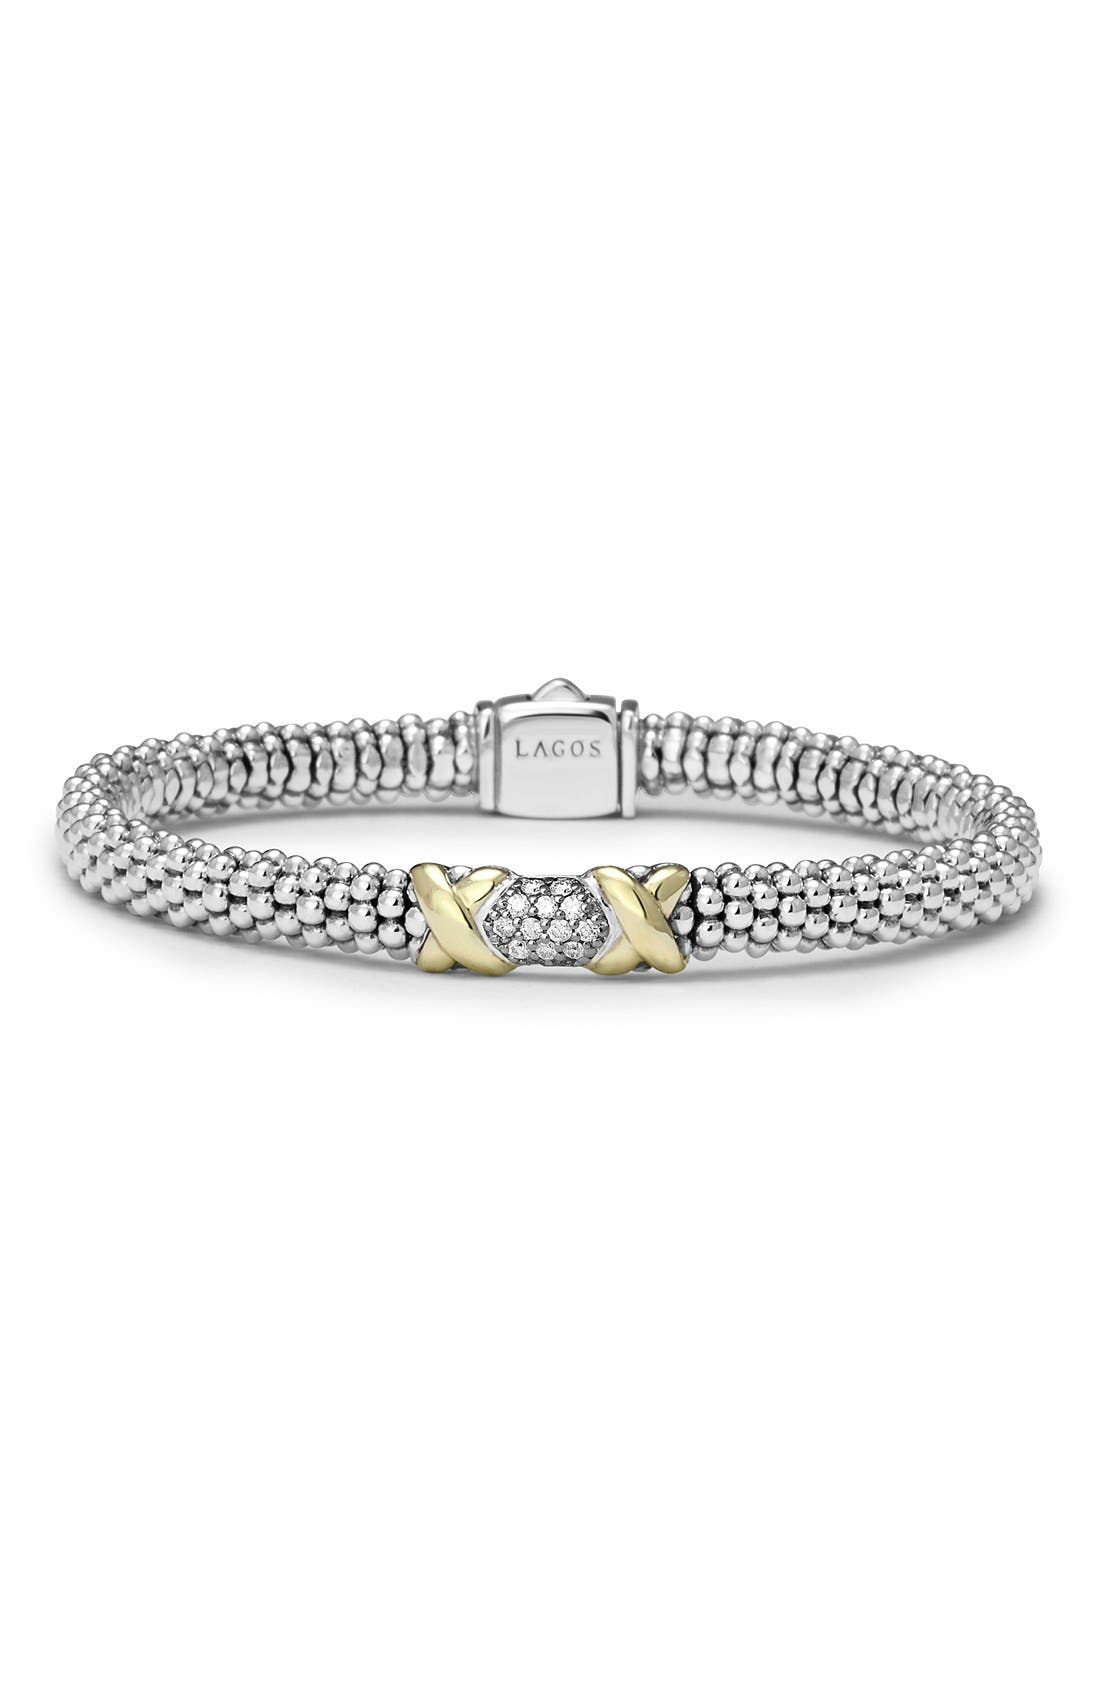 Alternate Image 1 Selected - LAGOS 'Diamond Lux' Diamond Rope Bracelet